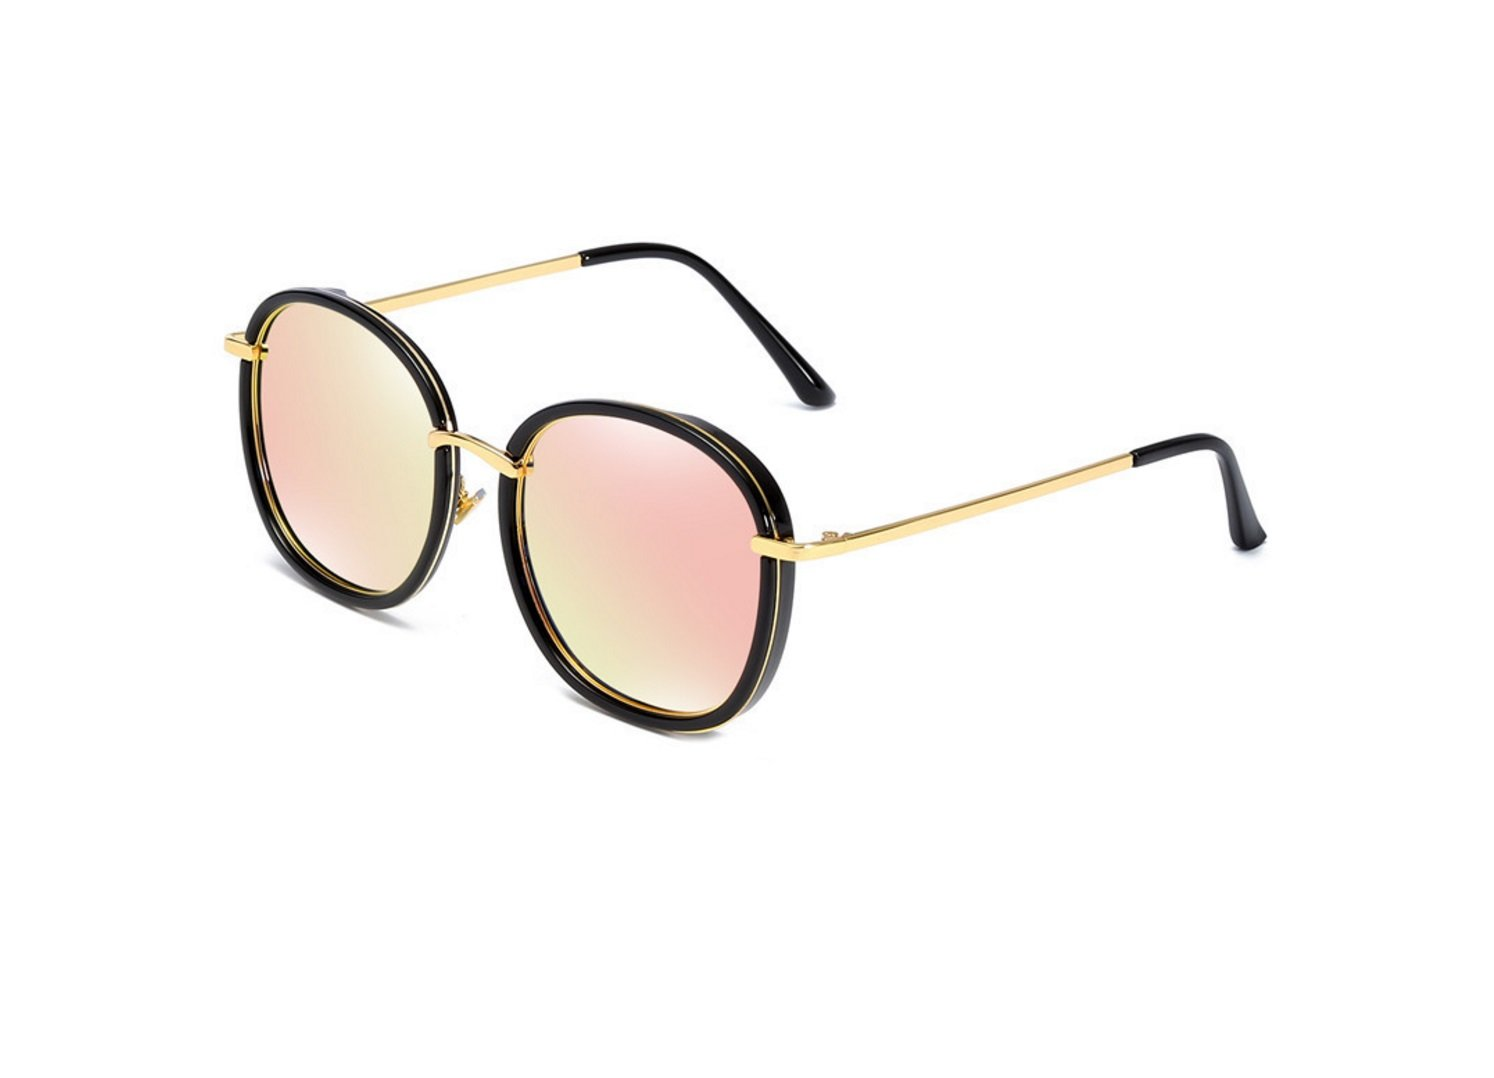 HDWY New European and American Sunglasses Ms. Extreme Fashion Star With Sunglasses Spot Fashion Outdoor Street Shoot, Camping, Fishing Driving (Color : 5) by HDWY